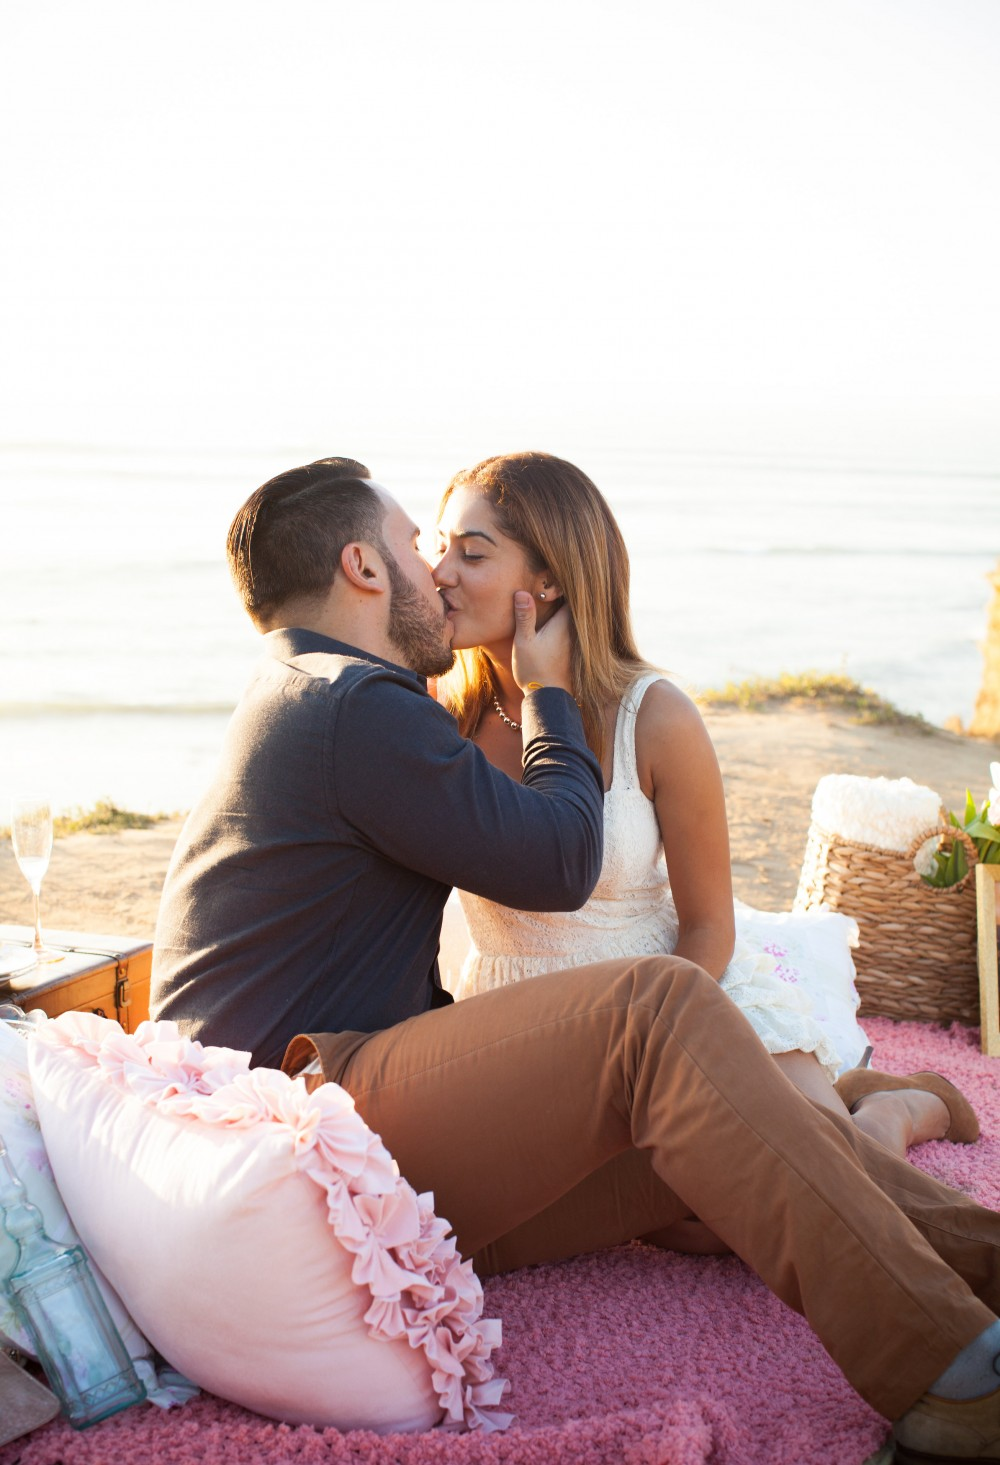 Image 3 of Diego and Jessica's Cliff Marriage Proposal at Sunset